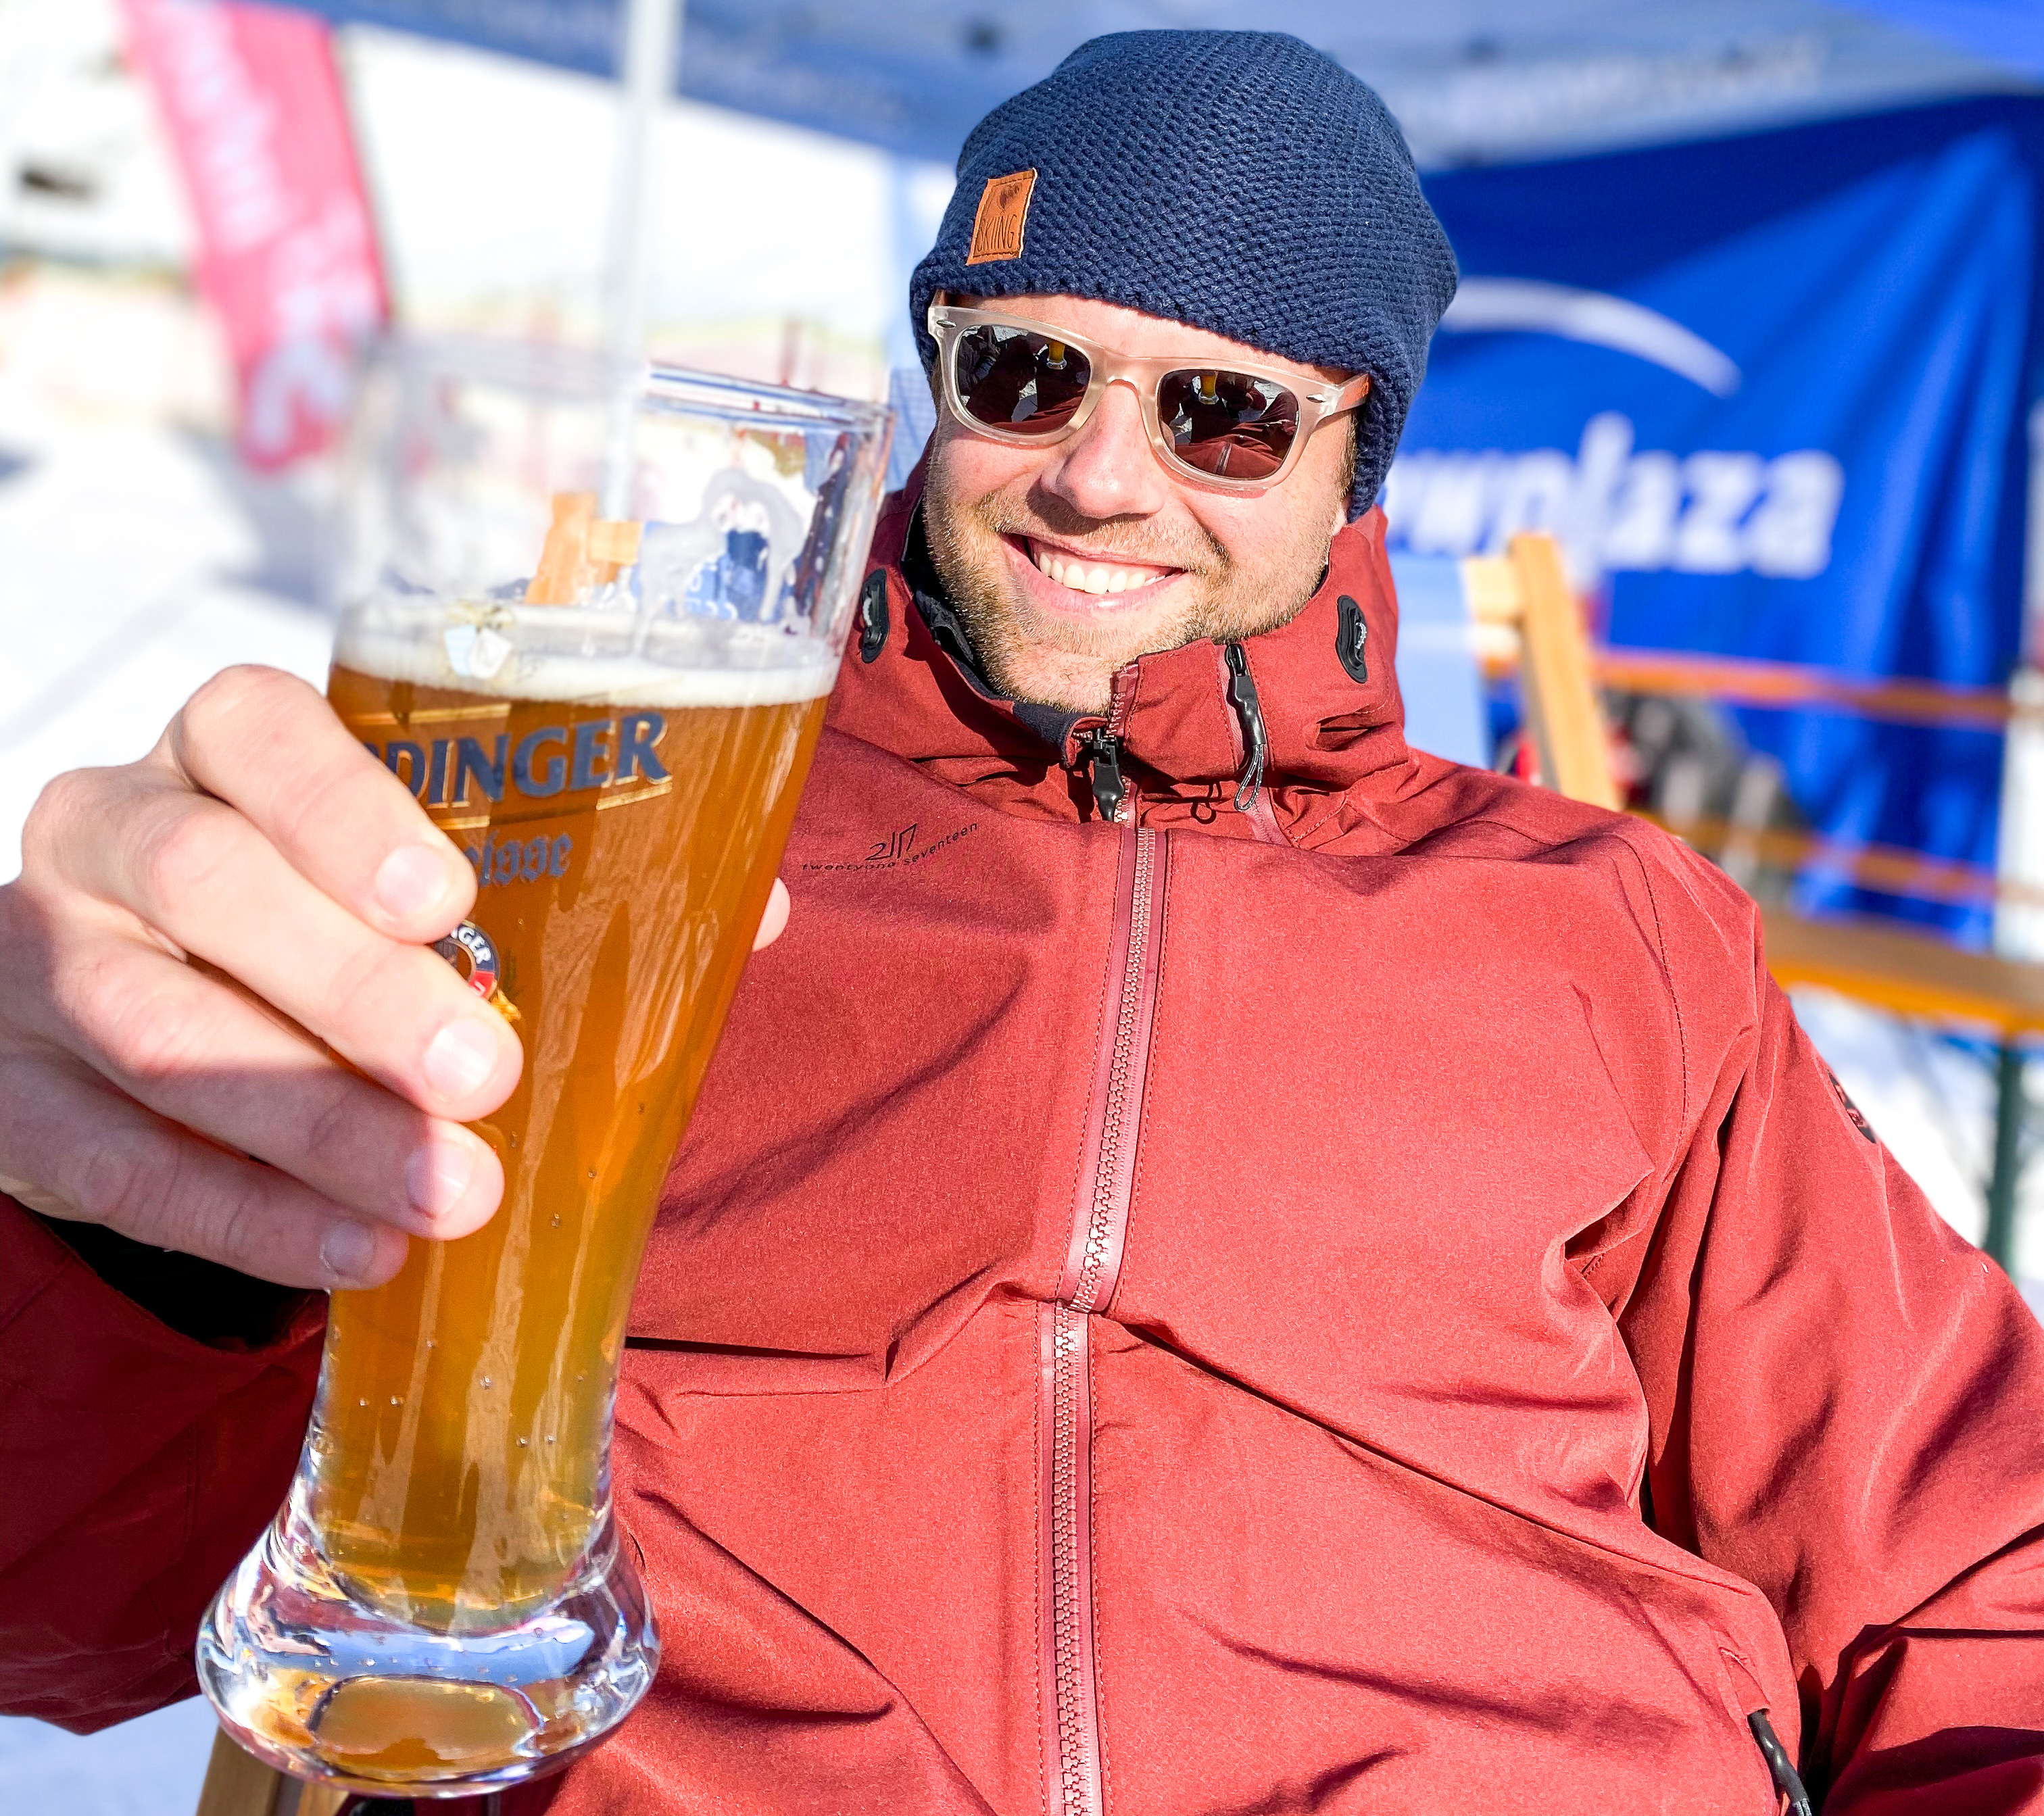 Weißbier wintersport